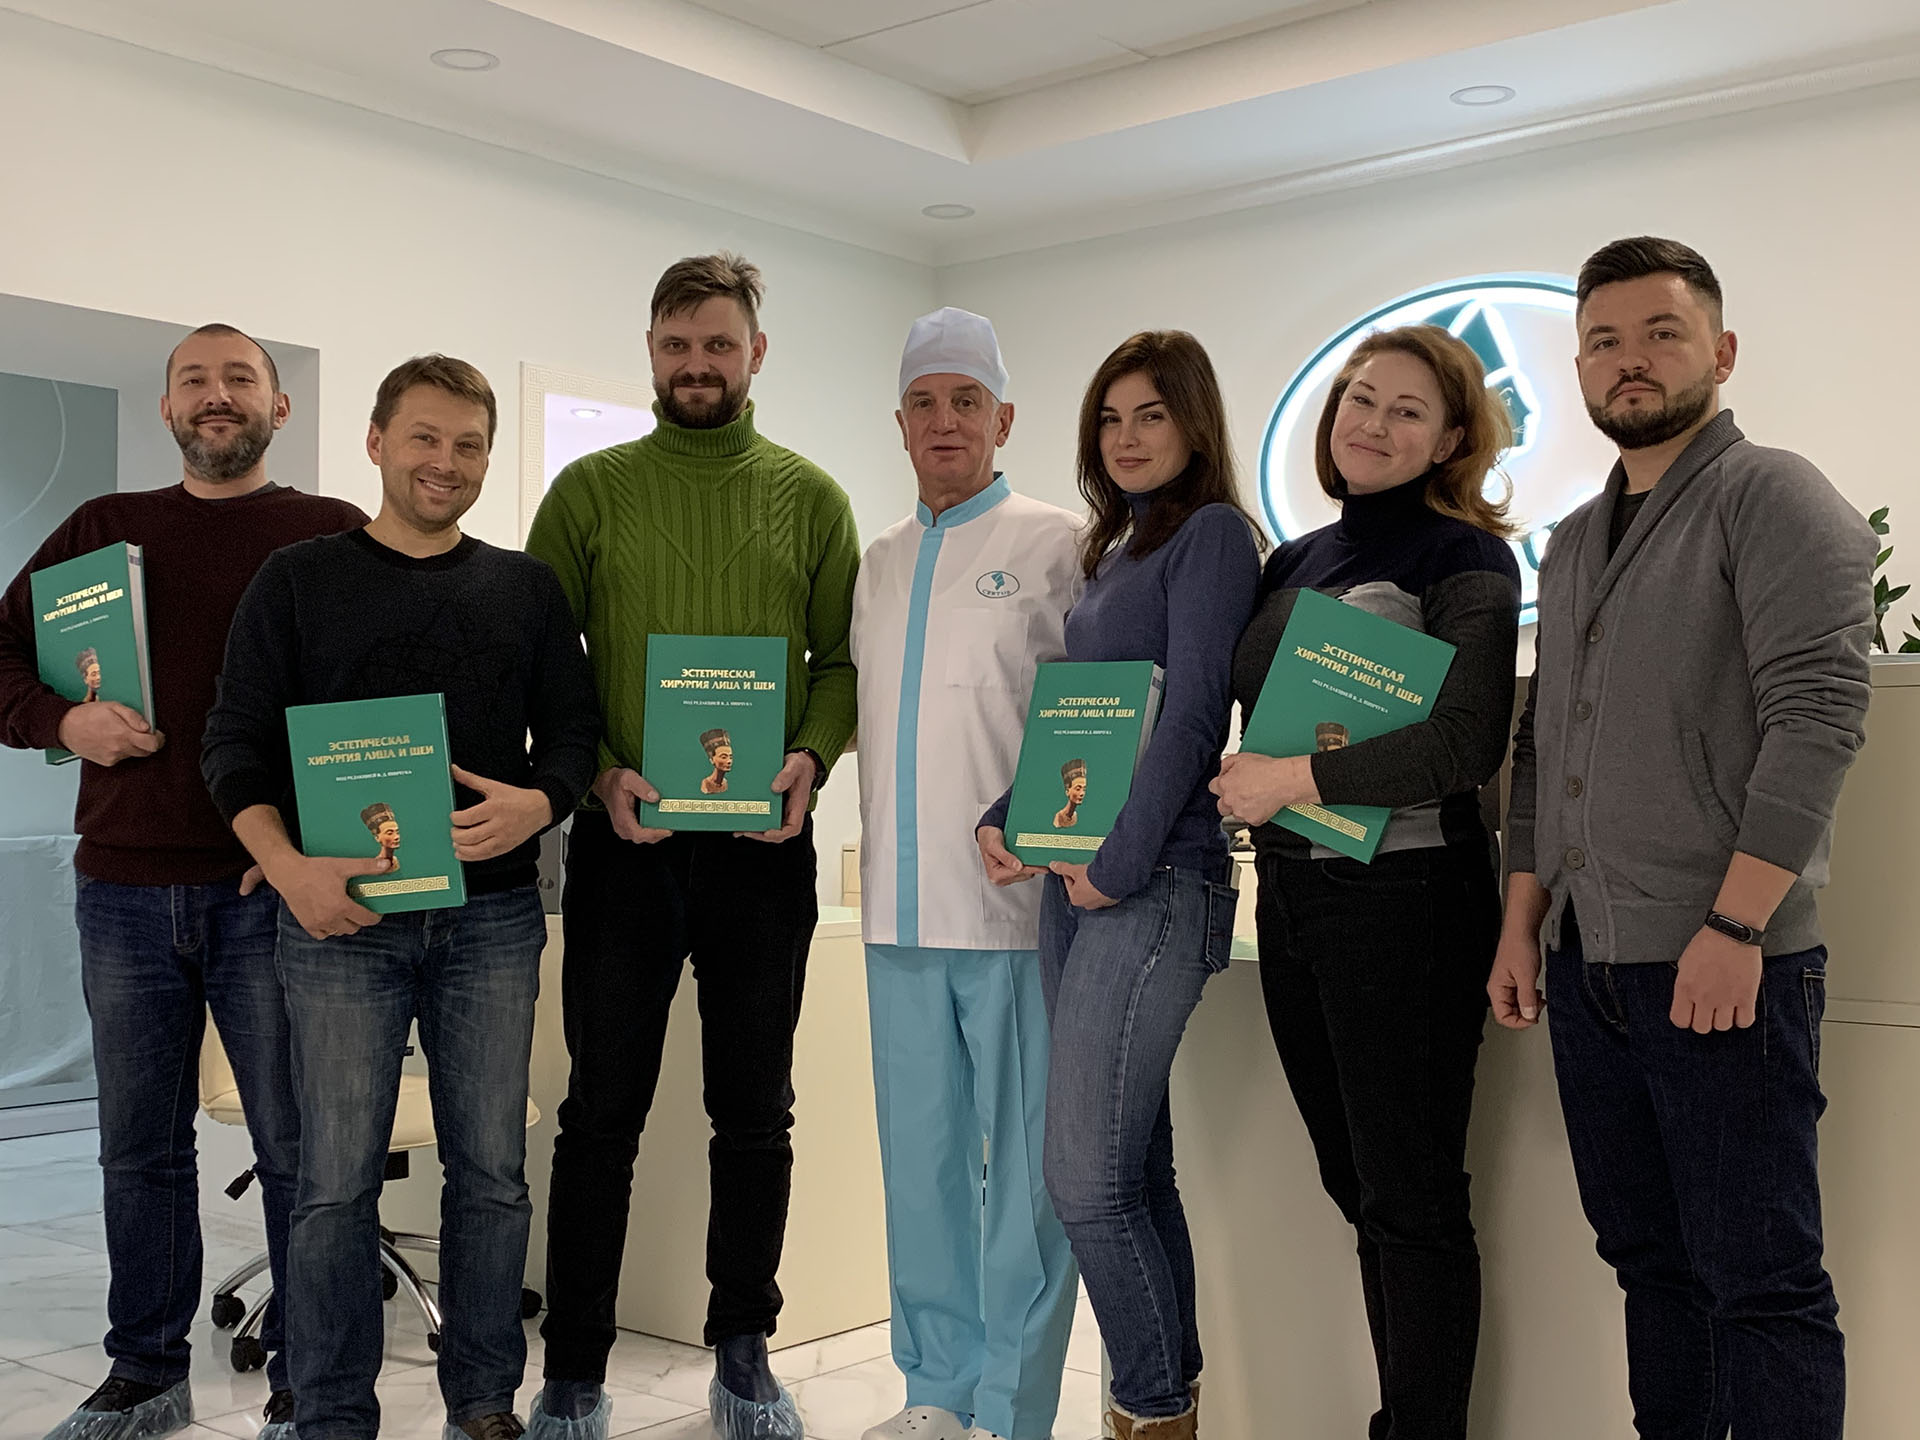 A book on aesthetic surgery has been published